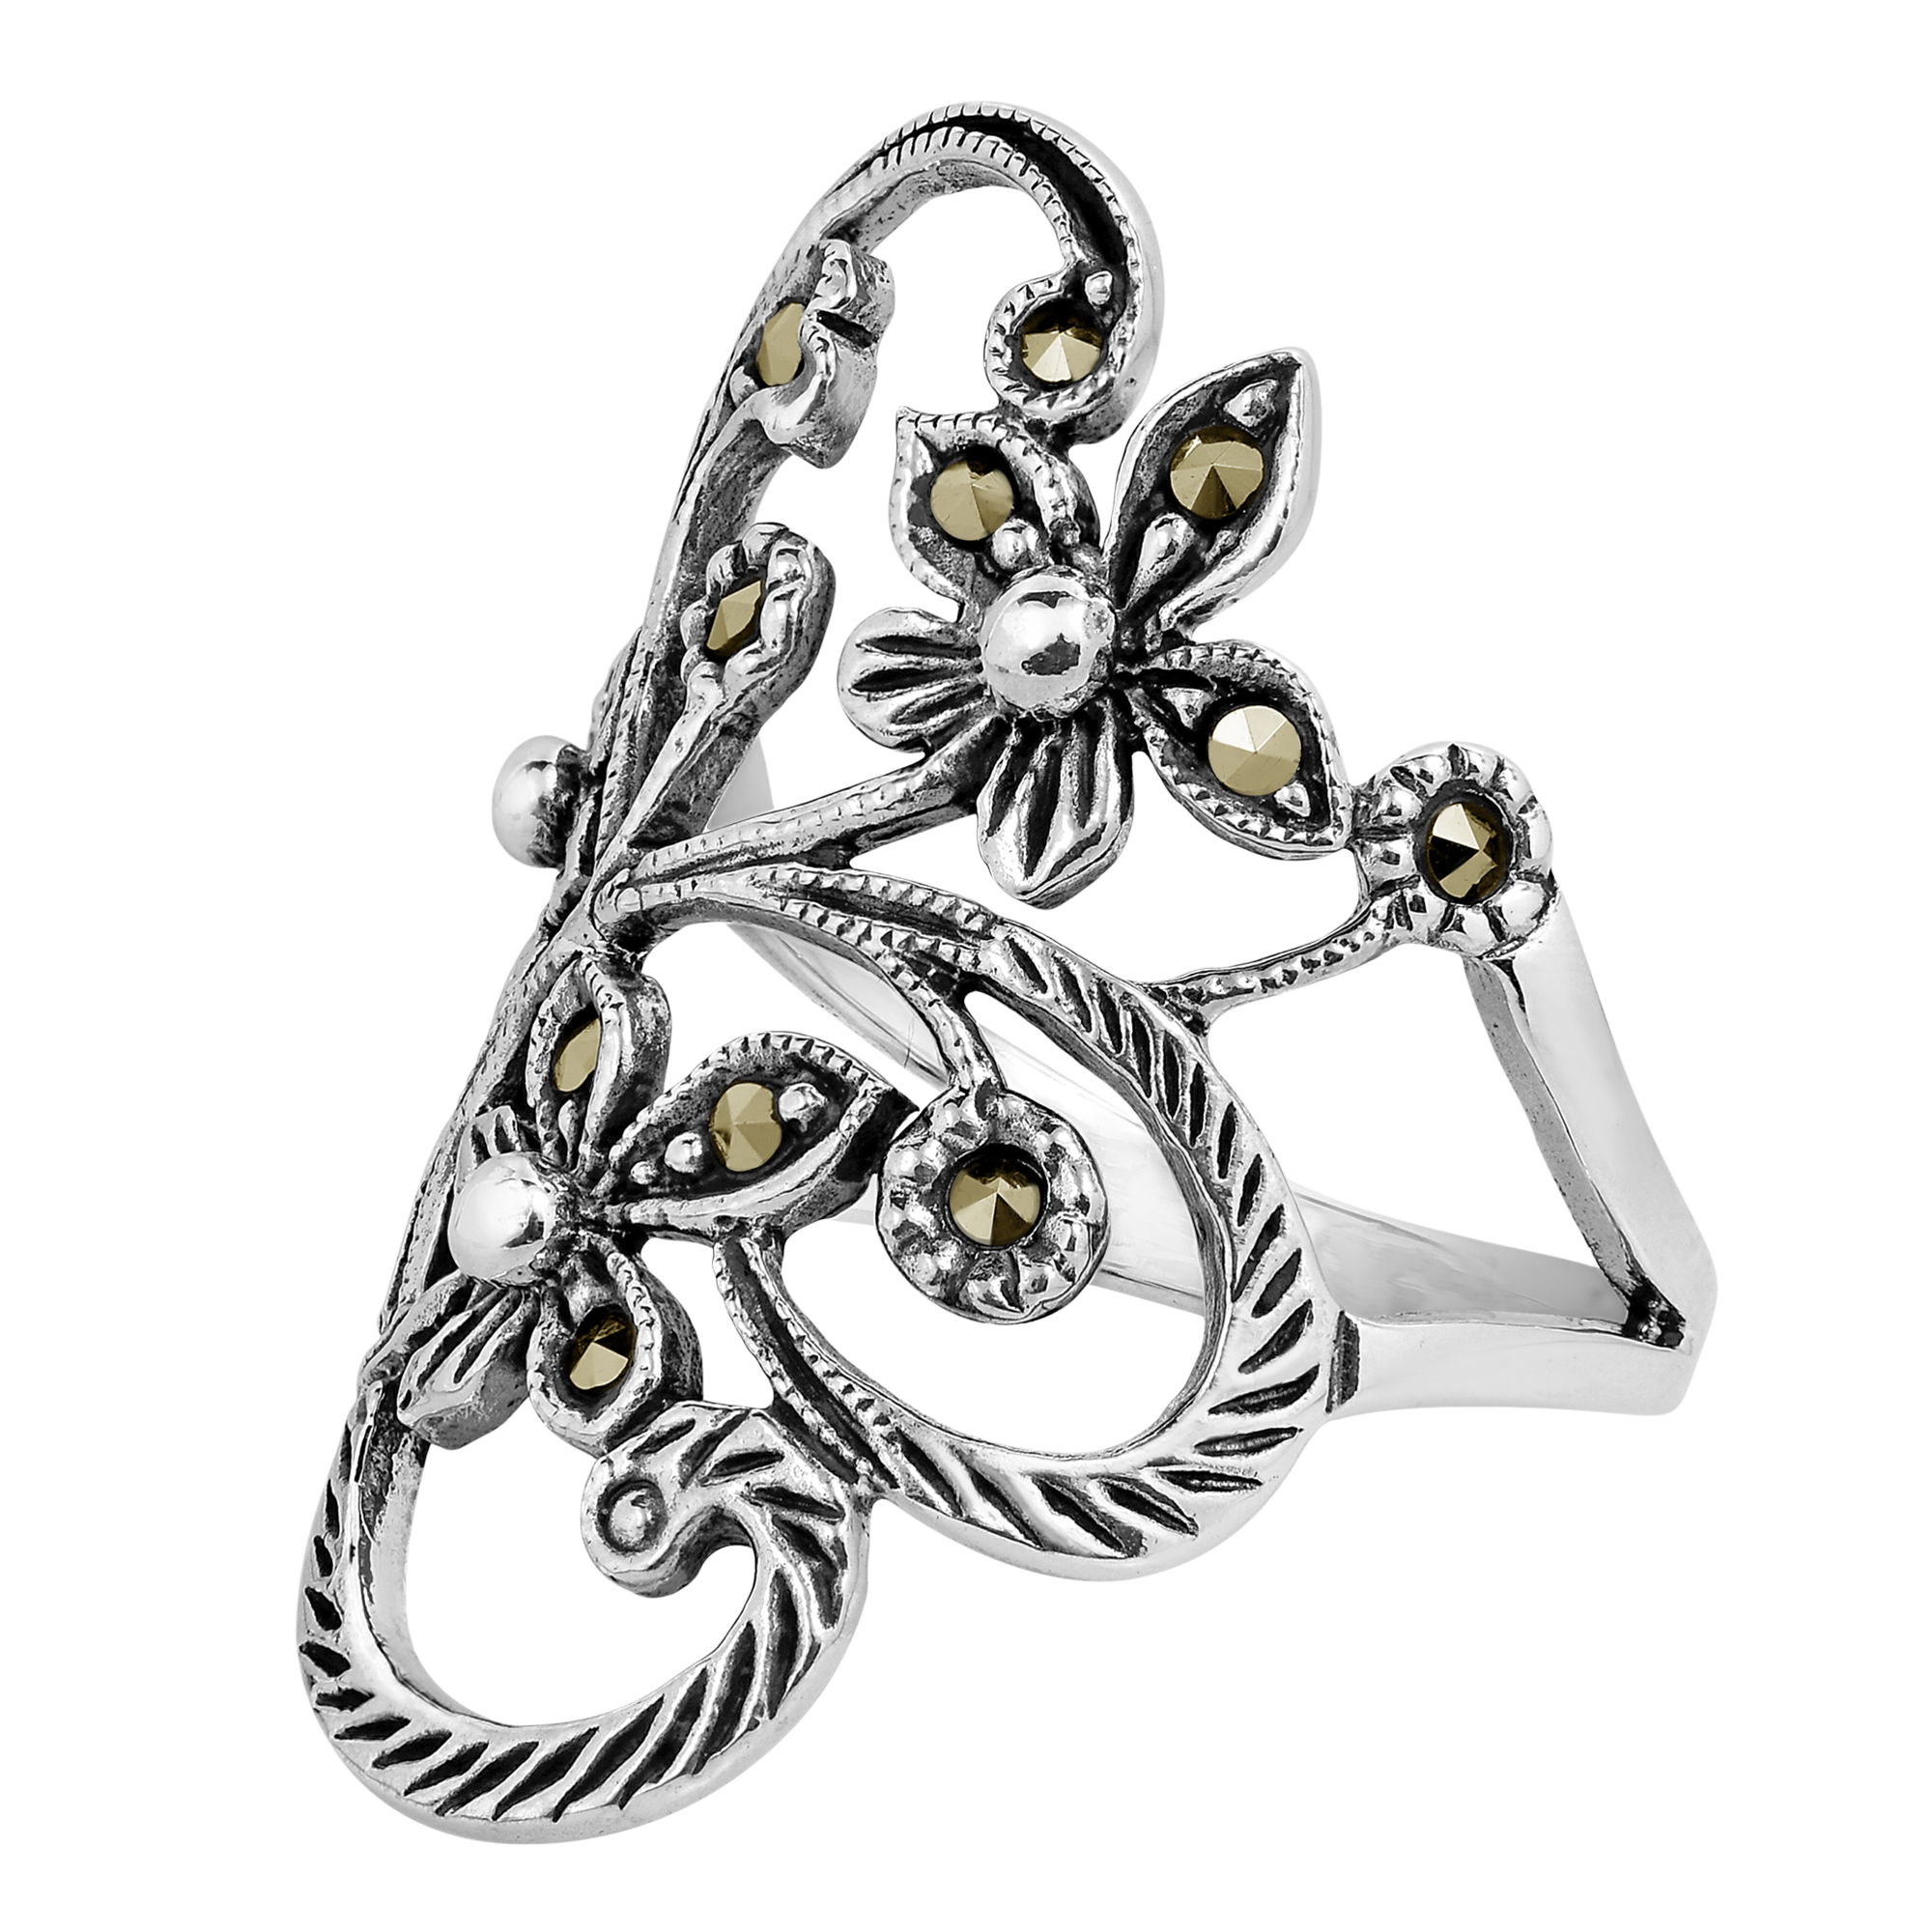 products hearts silver wide rings faithfulness handcrafted interconnected this marcasite beautiful ring mr details with eternal enchanting love encircled symbolizes band simply aeravida and